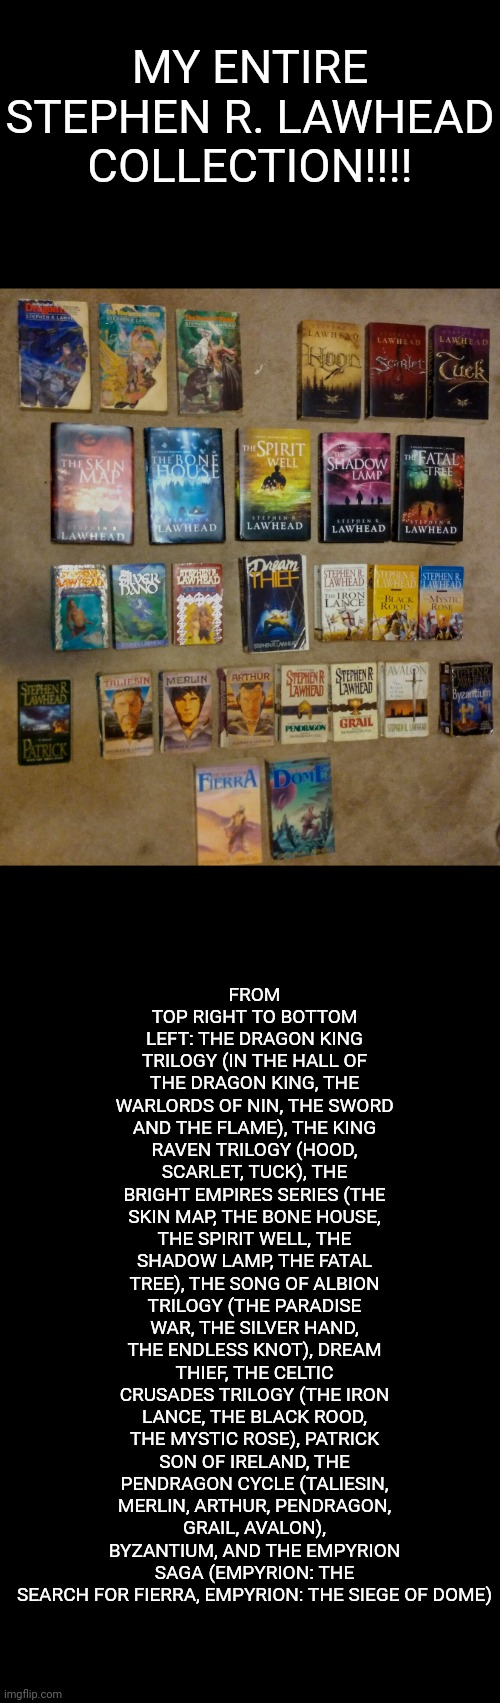 FROM TOP RIGHT TO BOTTOM LEFT: THE DRAGON KING TRILOGY (IN THE HALL OF THE DRAGON KING, THE WARLORDS OF NIN, THE SWORD AND THE FLAME), THE KING RAVEN TRILOGY (HOOD, SCARLET, TUCK), THE BRIGHT EMPIRES SERIES (THE SKIN MAP, THE BONE HOUSE, THE SPIRIT WELL, THE SHADOW LAMP, THE FATAL TREE), THE SONG OF ALBION TRILOGY (THE PARADISE WAR, THE SILVER HAND, THE ENDLESS KNOT), DREAM THIEF, THE CELTIC CRUSADES TRILOGY (THE IRON LANCE, THE BLACK ROOD, THE MYSTIC ROSE), PATRICK SON OF IRELAND, THE PENDRAGON CYCLE (TALIESIN, MERLIN, ARTHUR, PENDRAGON, GRAIL, AVALON), BYZANTIUM, AND THE EMPYRION SAGA (EMPYRION: THE SEARCH FOR FIERRA, EMPYRION: THE SIEGE OF DOME); MY ENTIRE STEPHEN R. LAWHEAD COLLECTION!!!! | image tagged in nerd,books,fantasy | made w/ Imgflip meme maker